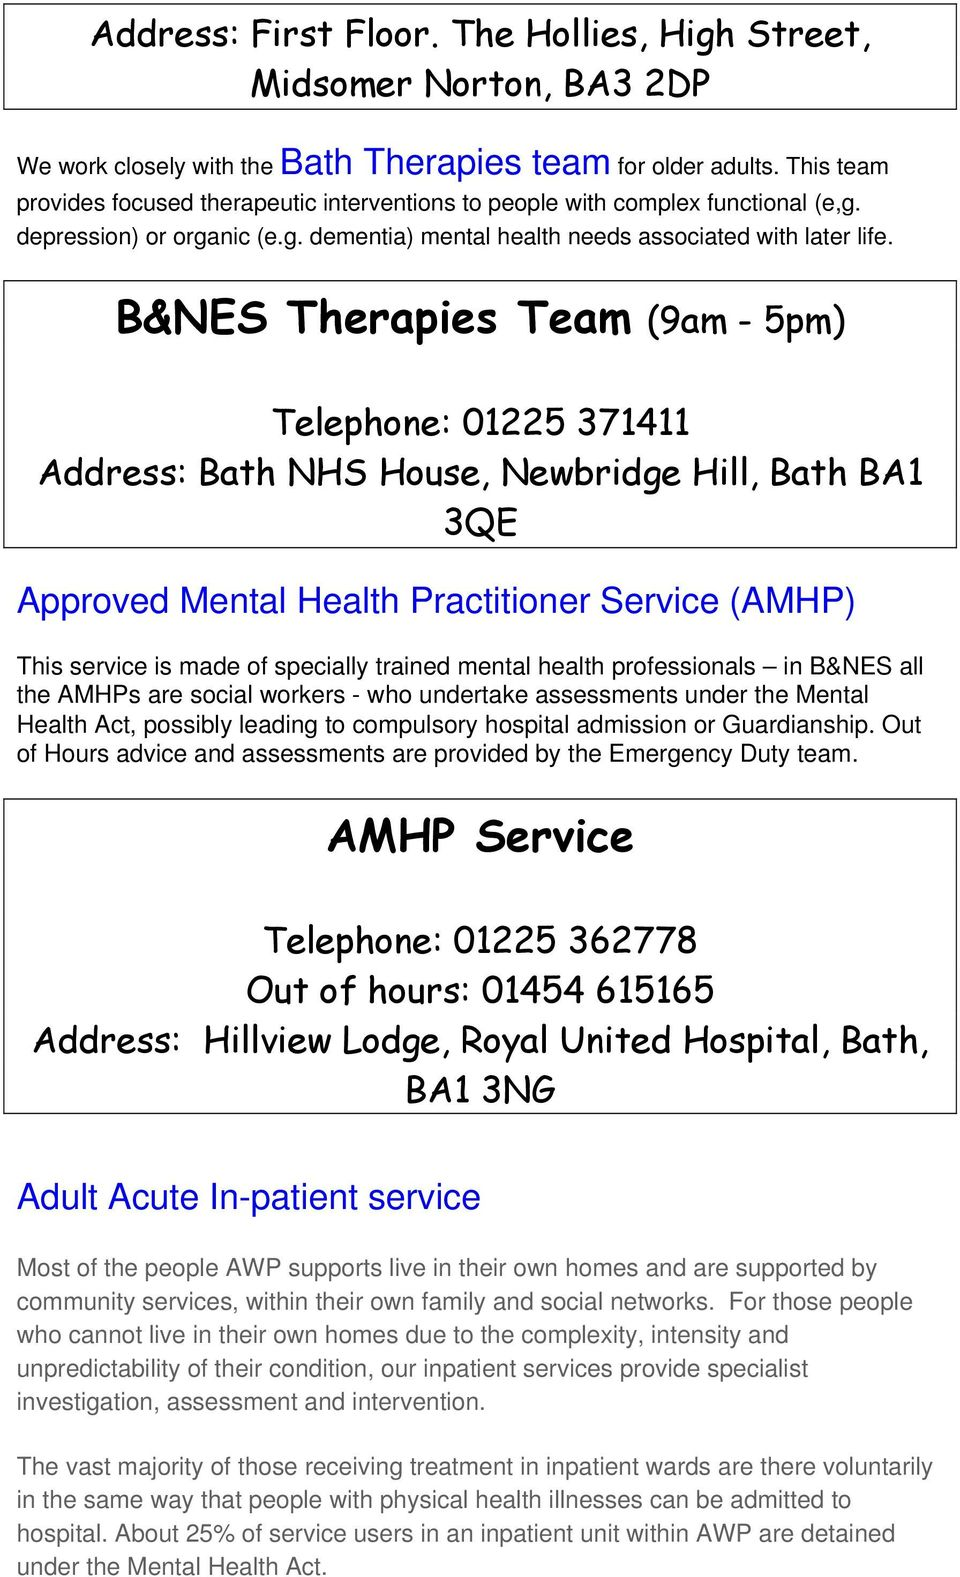 B&NES Therapies Team (9am - 5pm) Telephone: 01225 371411 Address: Bath NHS House, Newbridge Hill, Bath BA1 3QE Approved Mental Health Practitioner Service (AMHP) This service is made of specially